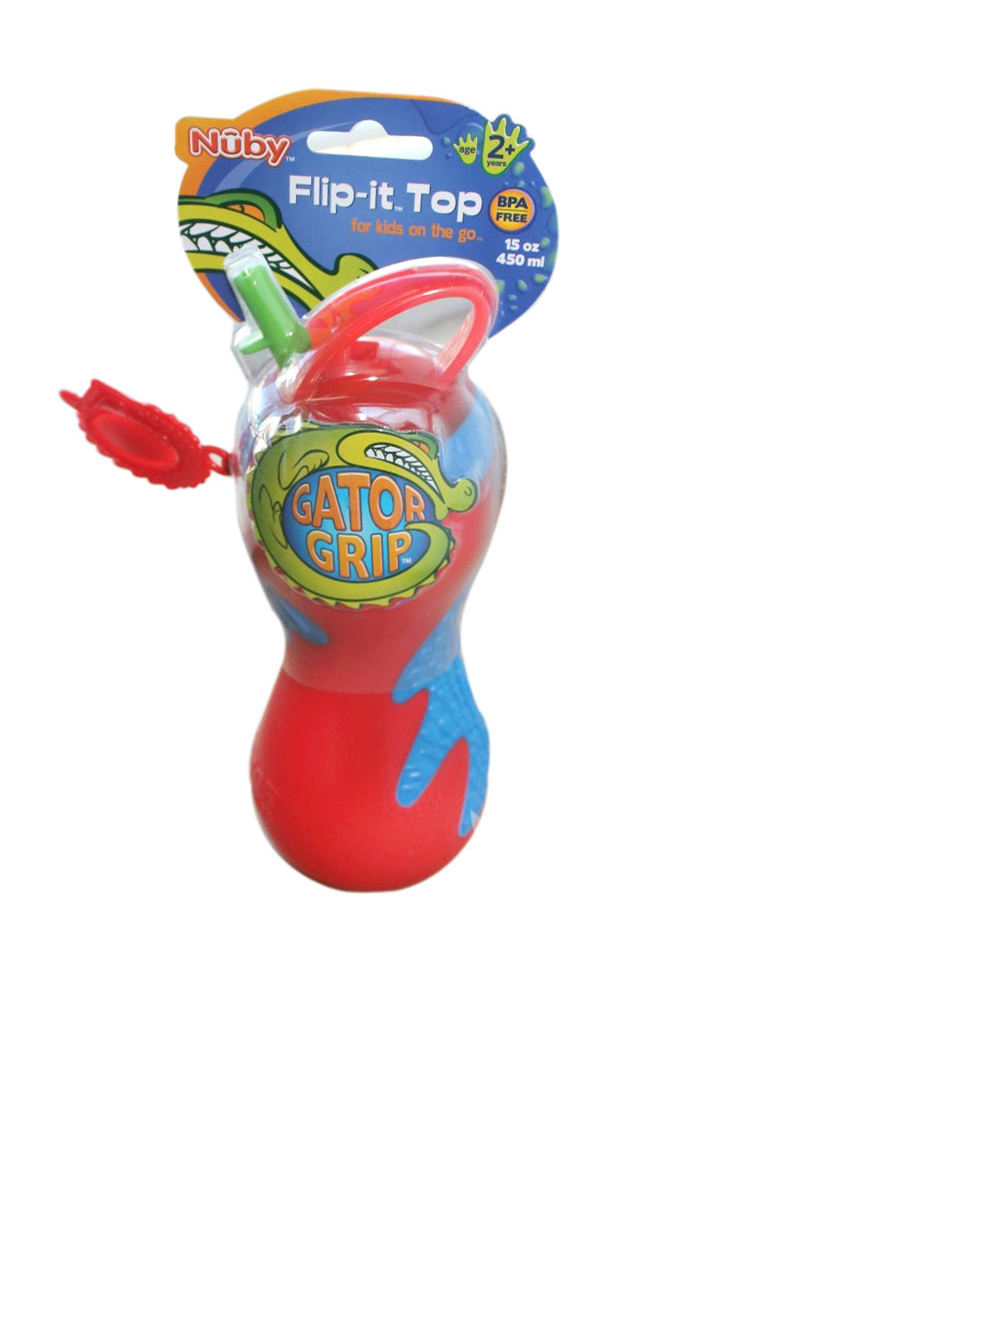 Image of Nuby Gator Grip Flipit Top Sipper 15 oz.  red one size